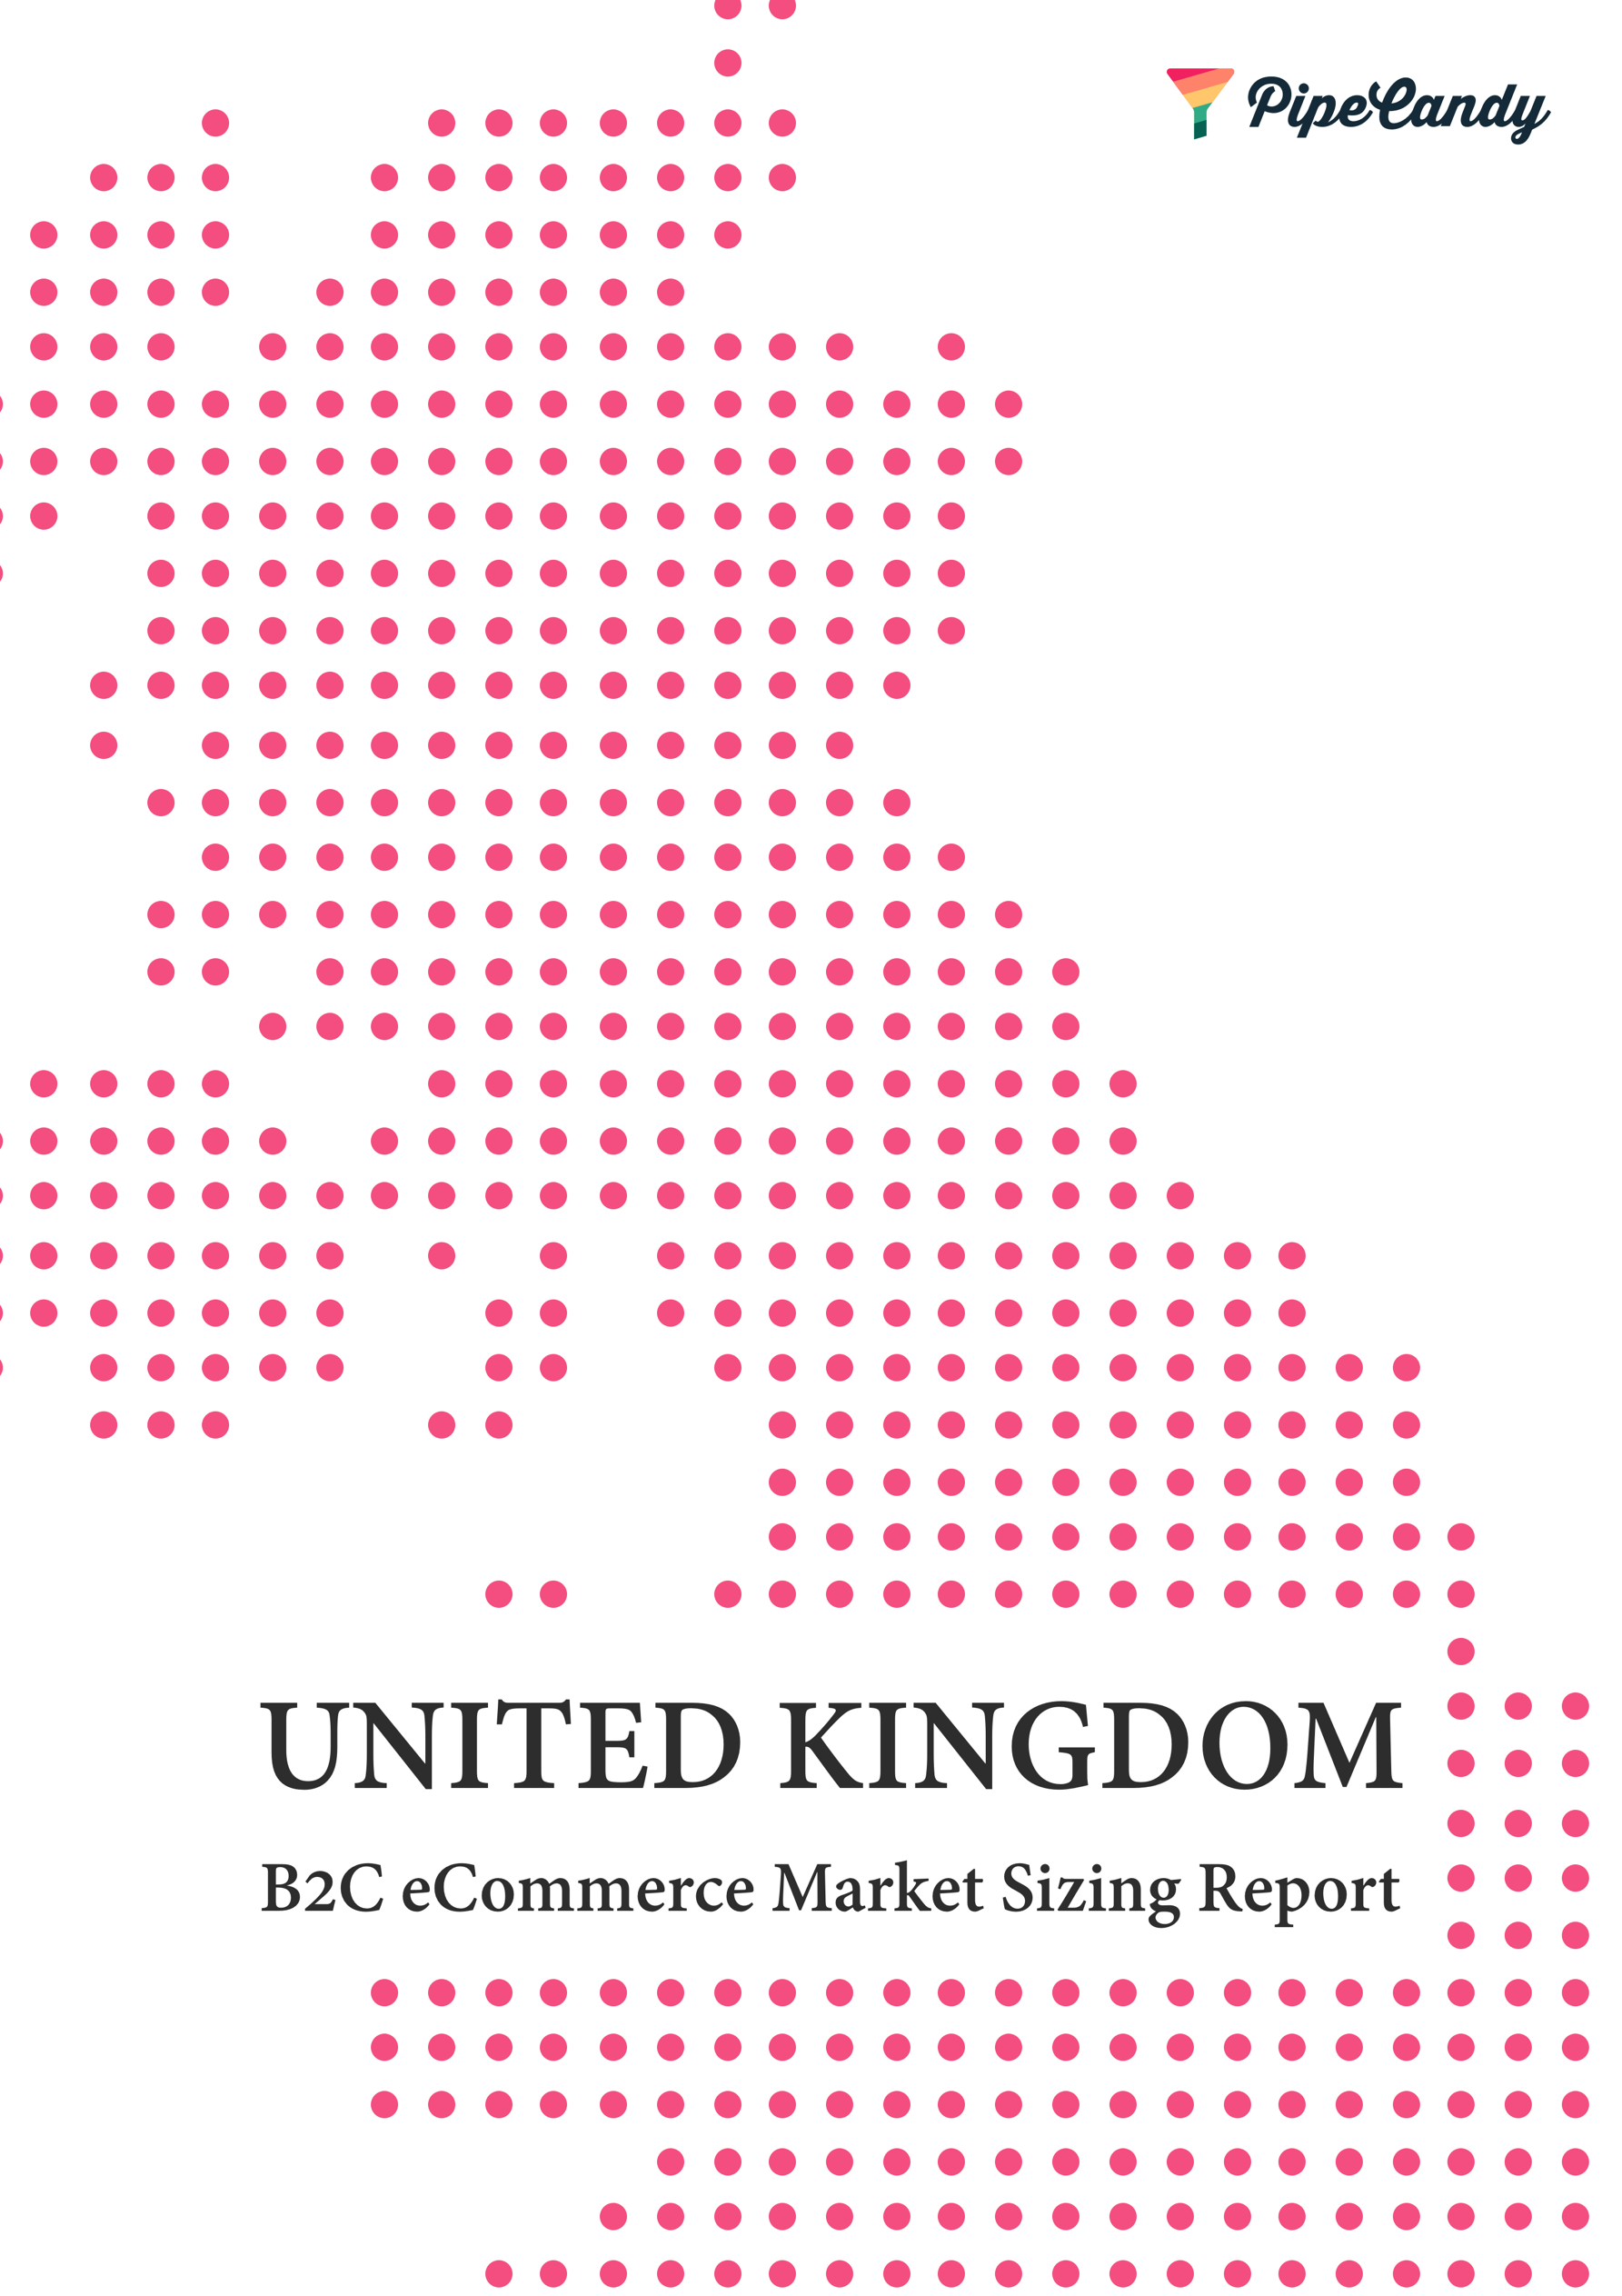 UK eCommerce Market Share